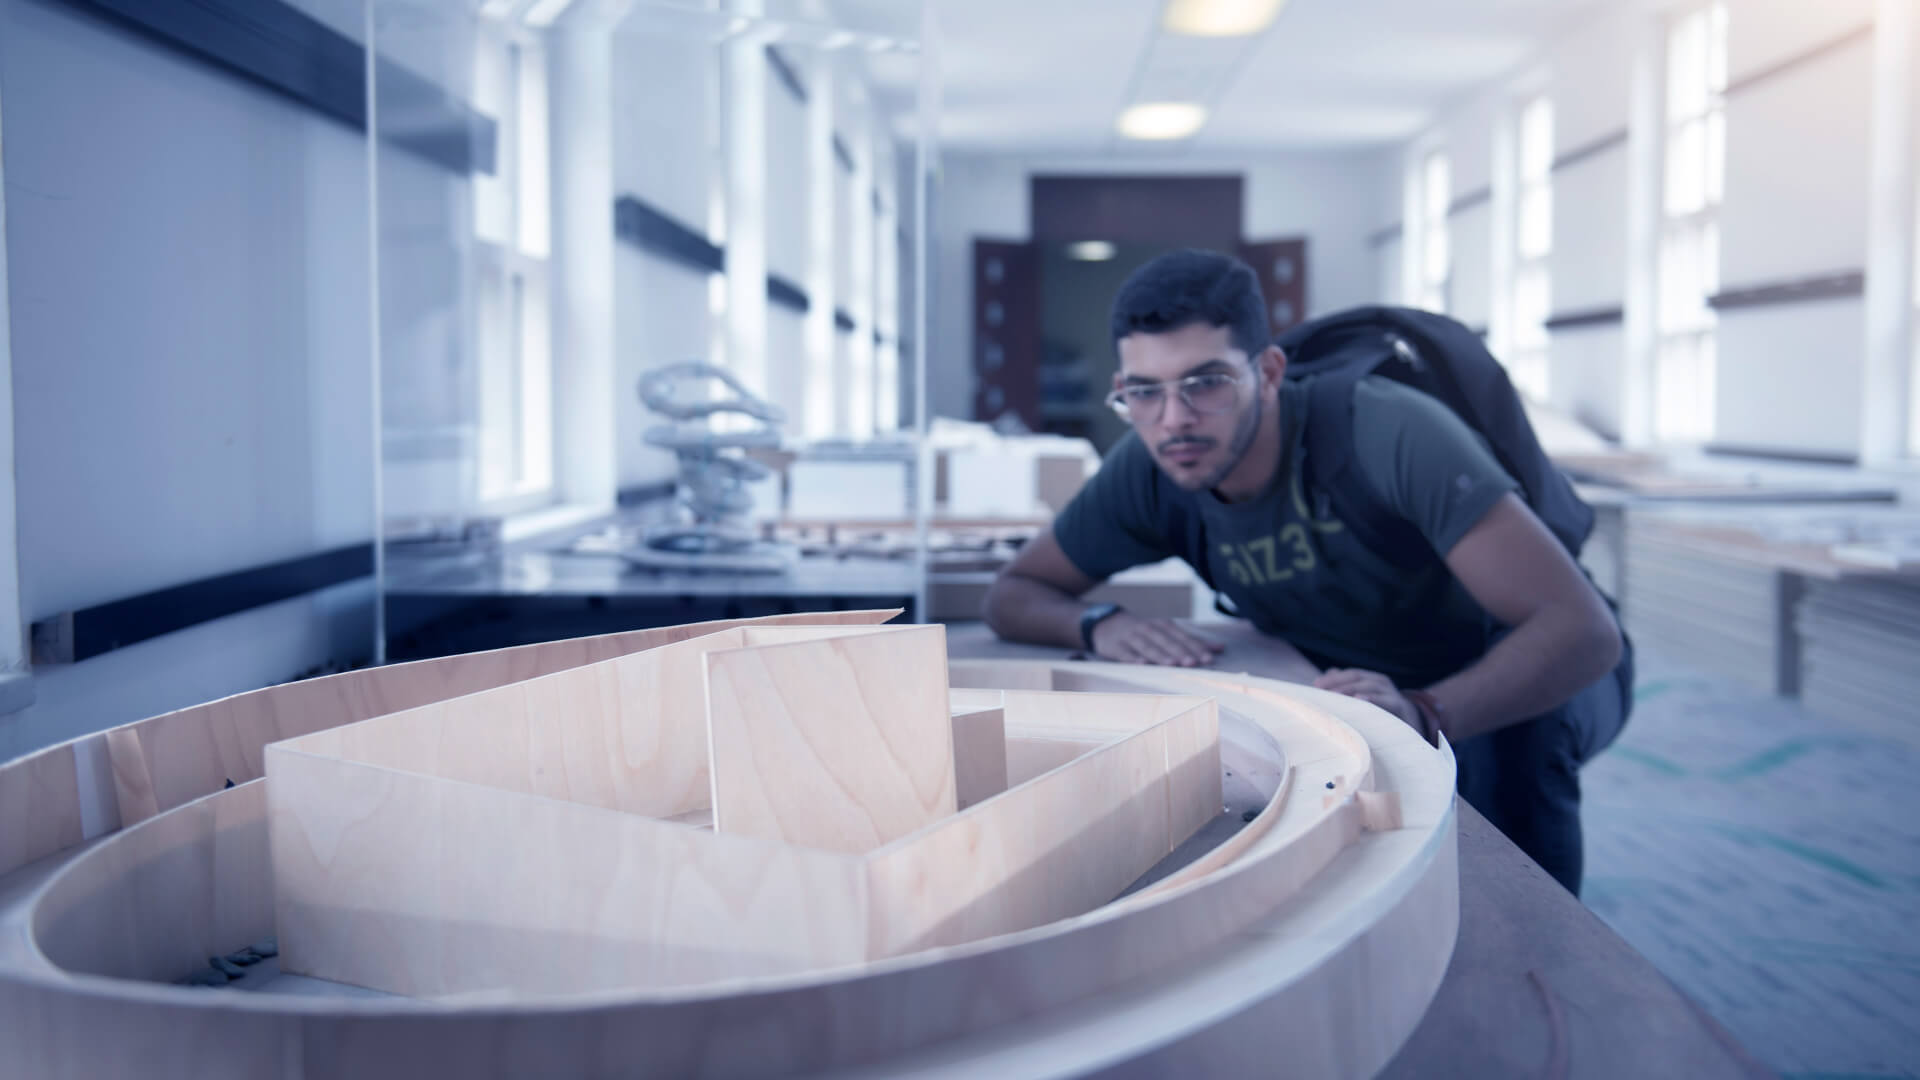 School of Architecture, Art & Design